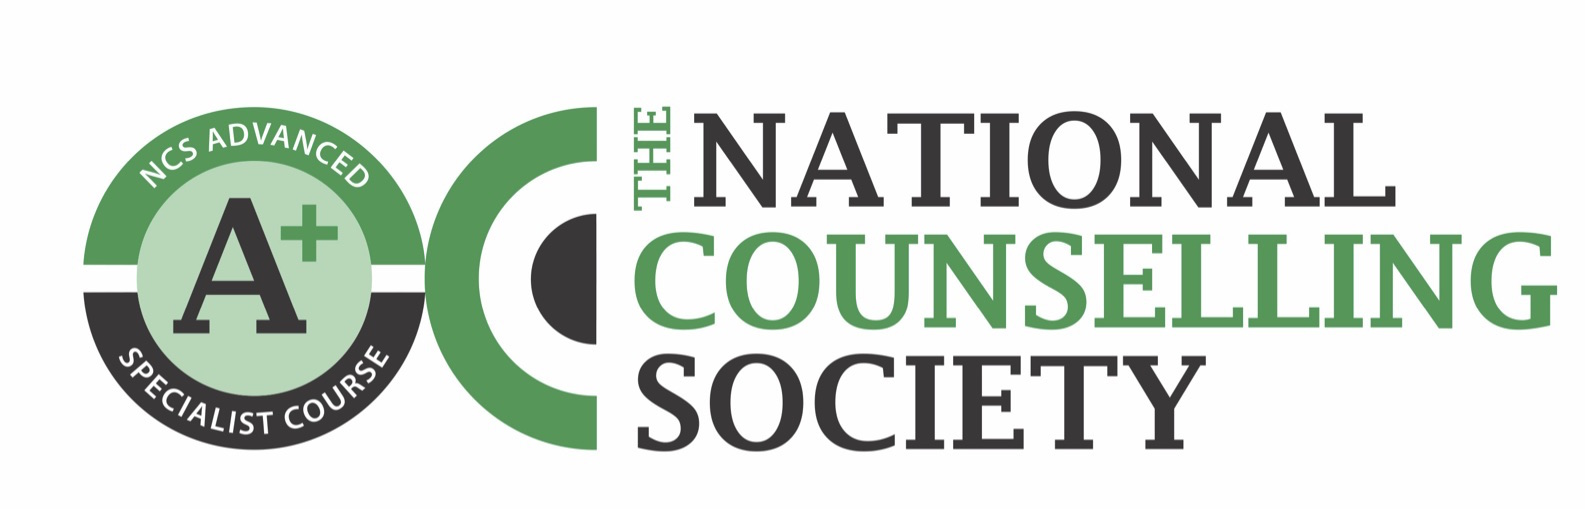 National Counselling Society Advanced Specialised Training Logo